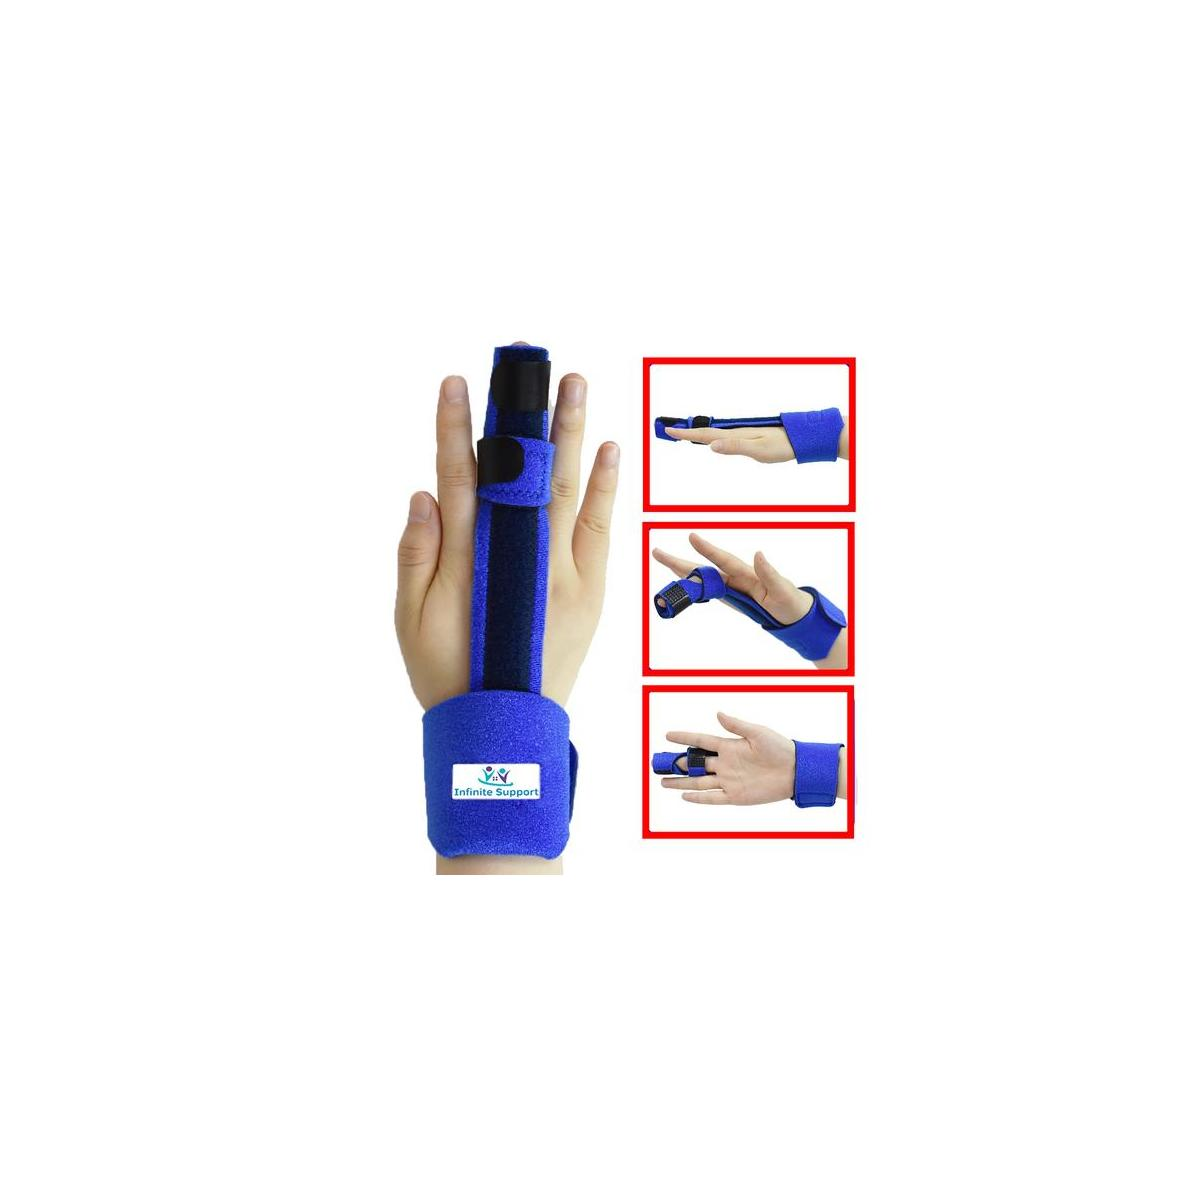 Infinite Support Malleable Finger Splint - Trigger Finger Splint, Mallet Finger Brace Relieve Pain, Full Hand, Fingers and Wrist Brace Support for Broken Fingers